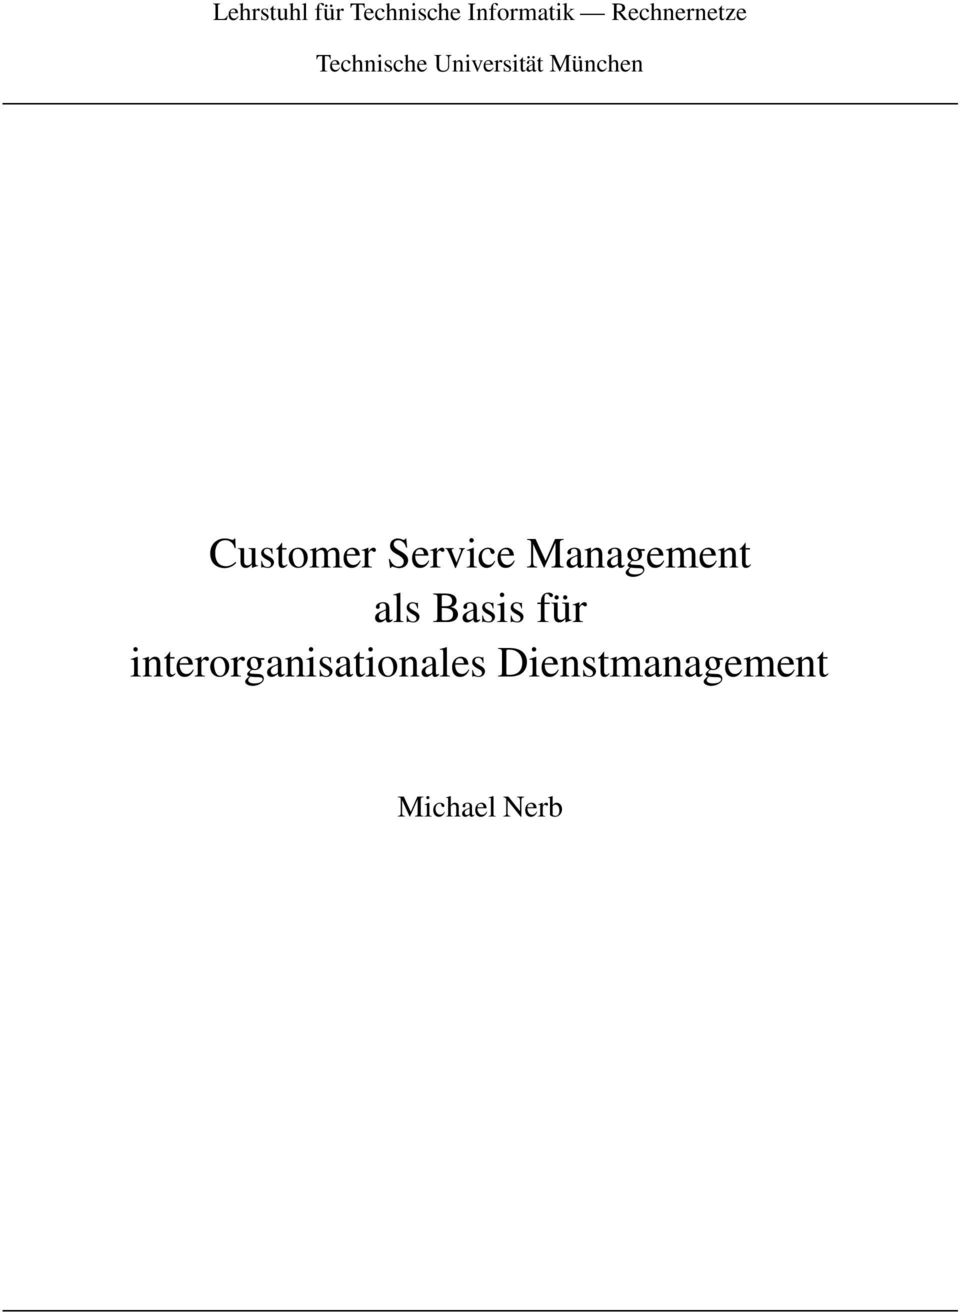 Customer Service Management als Basis für